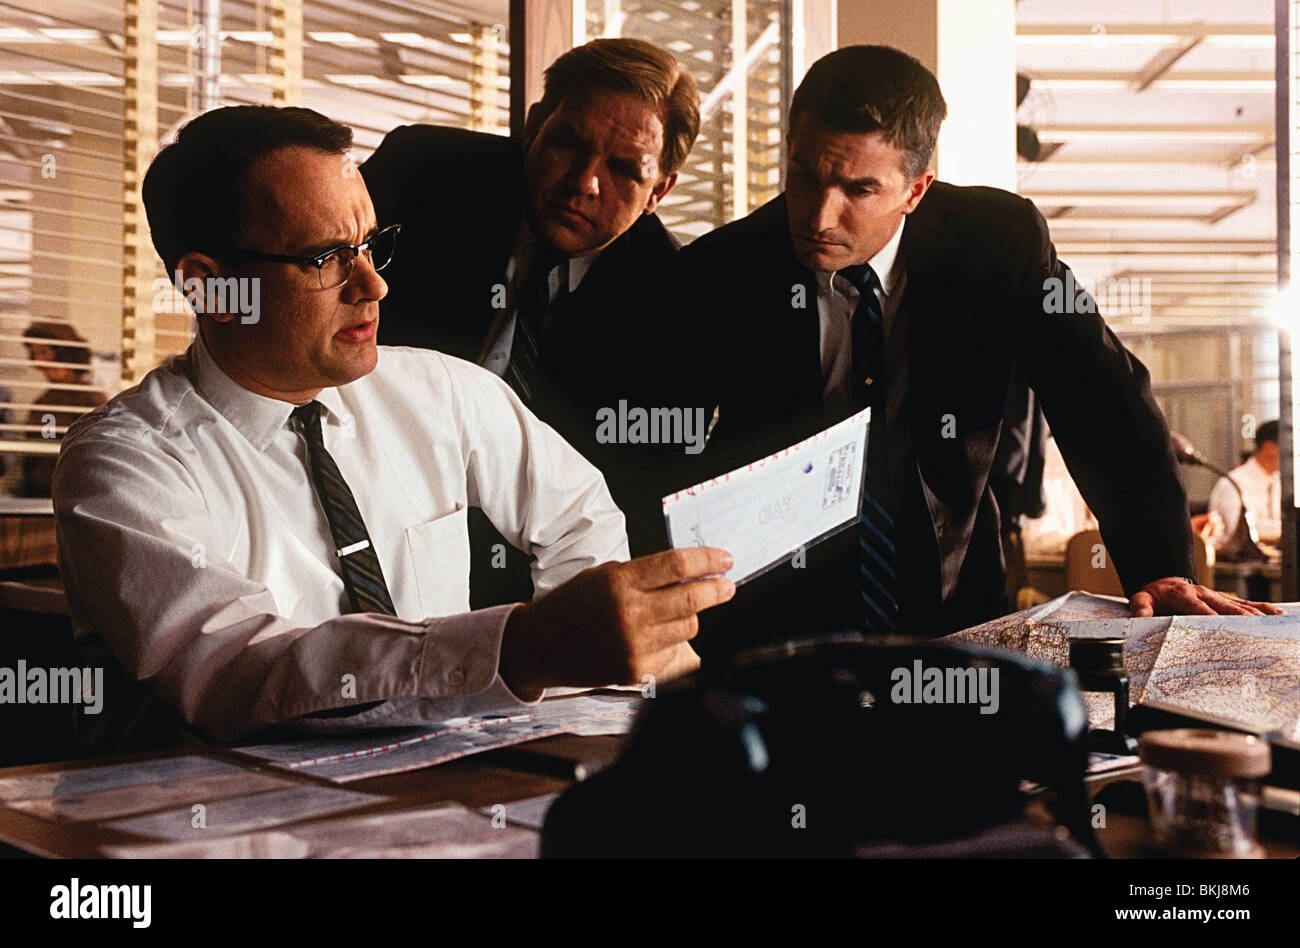 Catch Me If You Can Movie Stock Photos Catch Me If You Can Movie